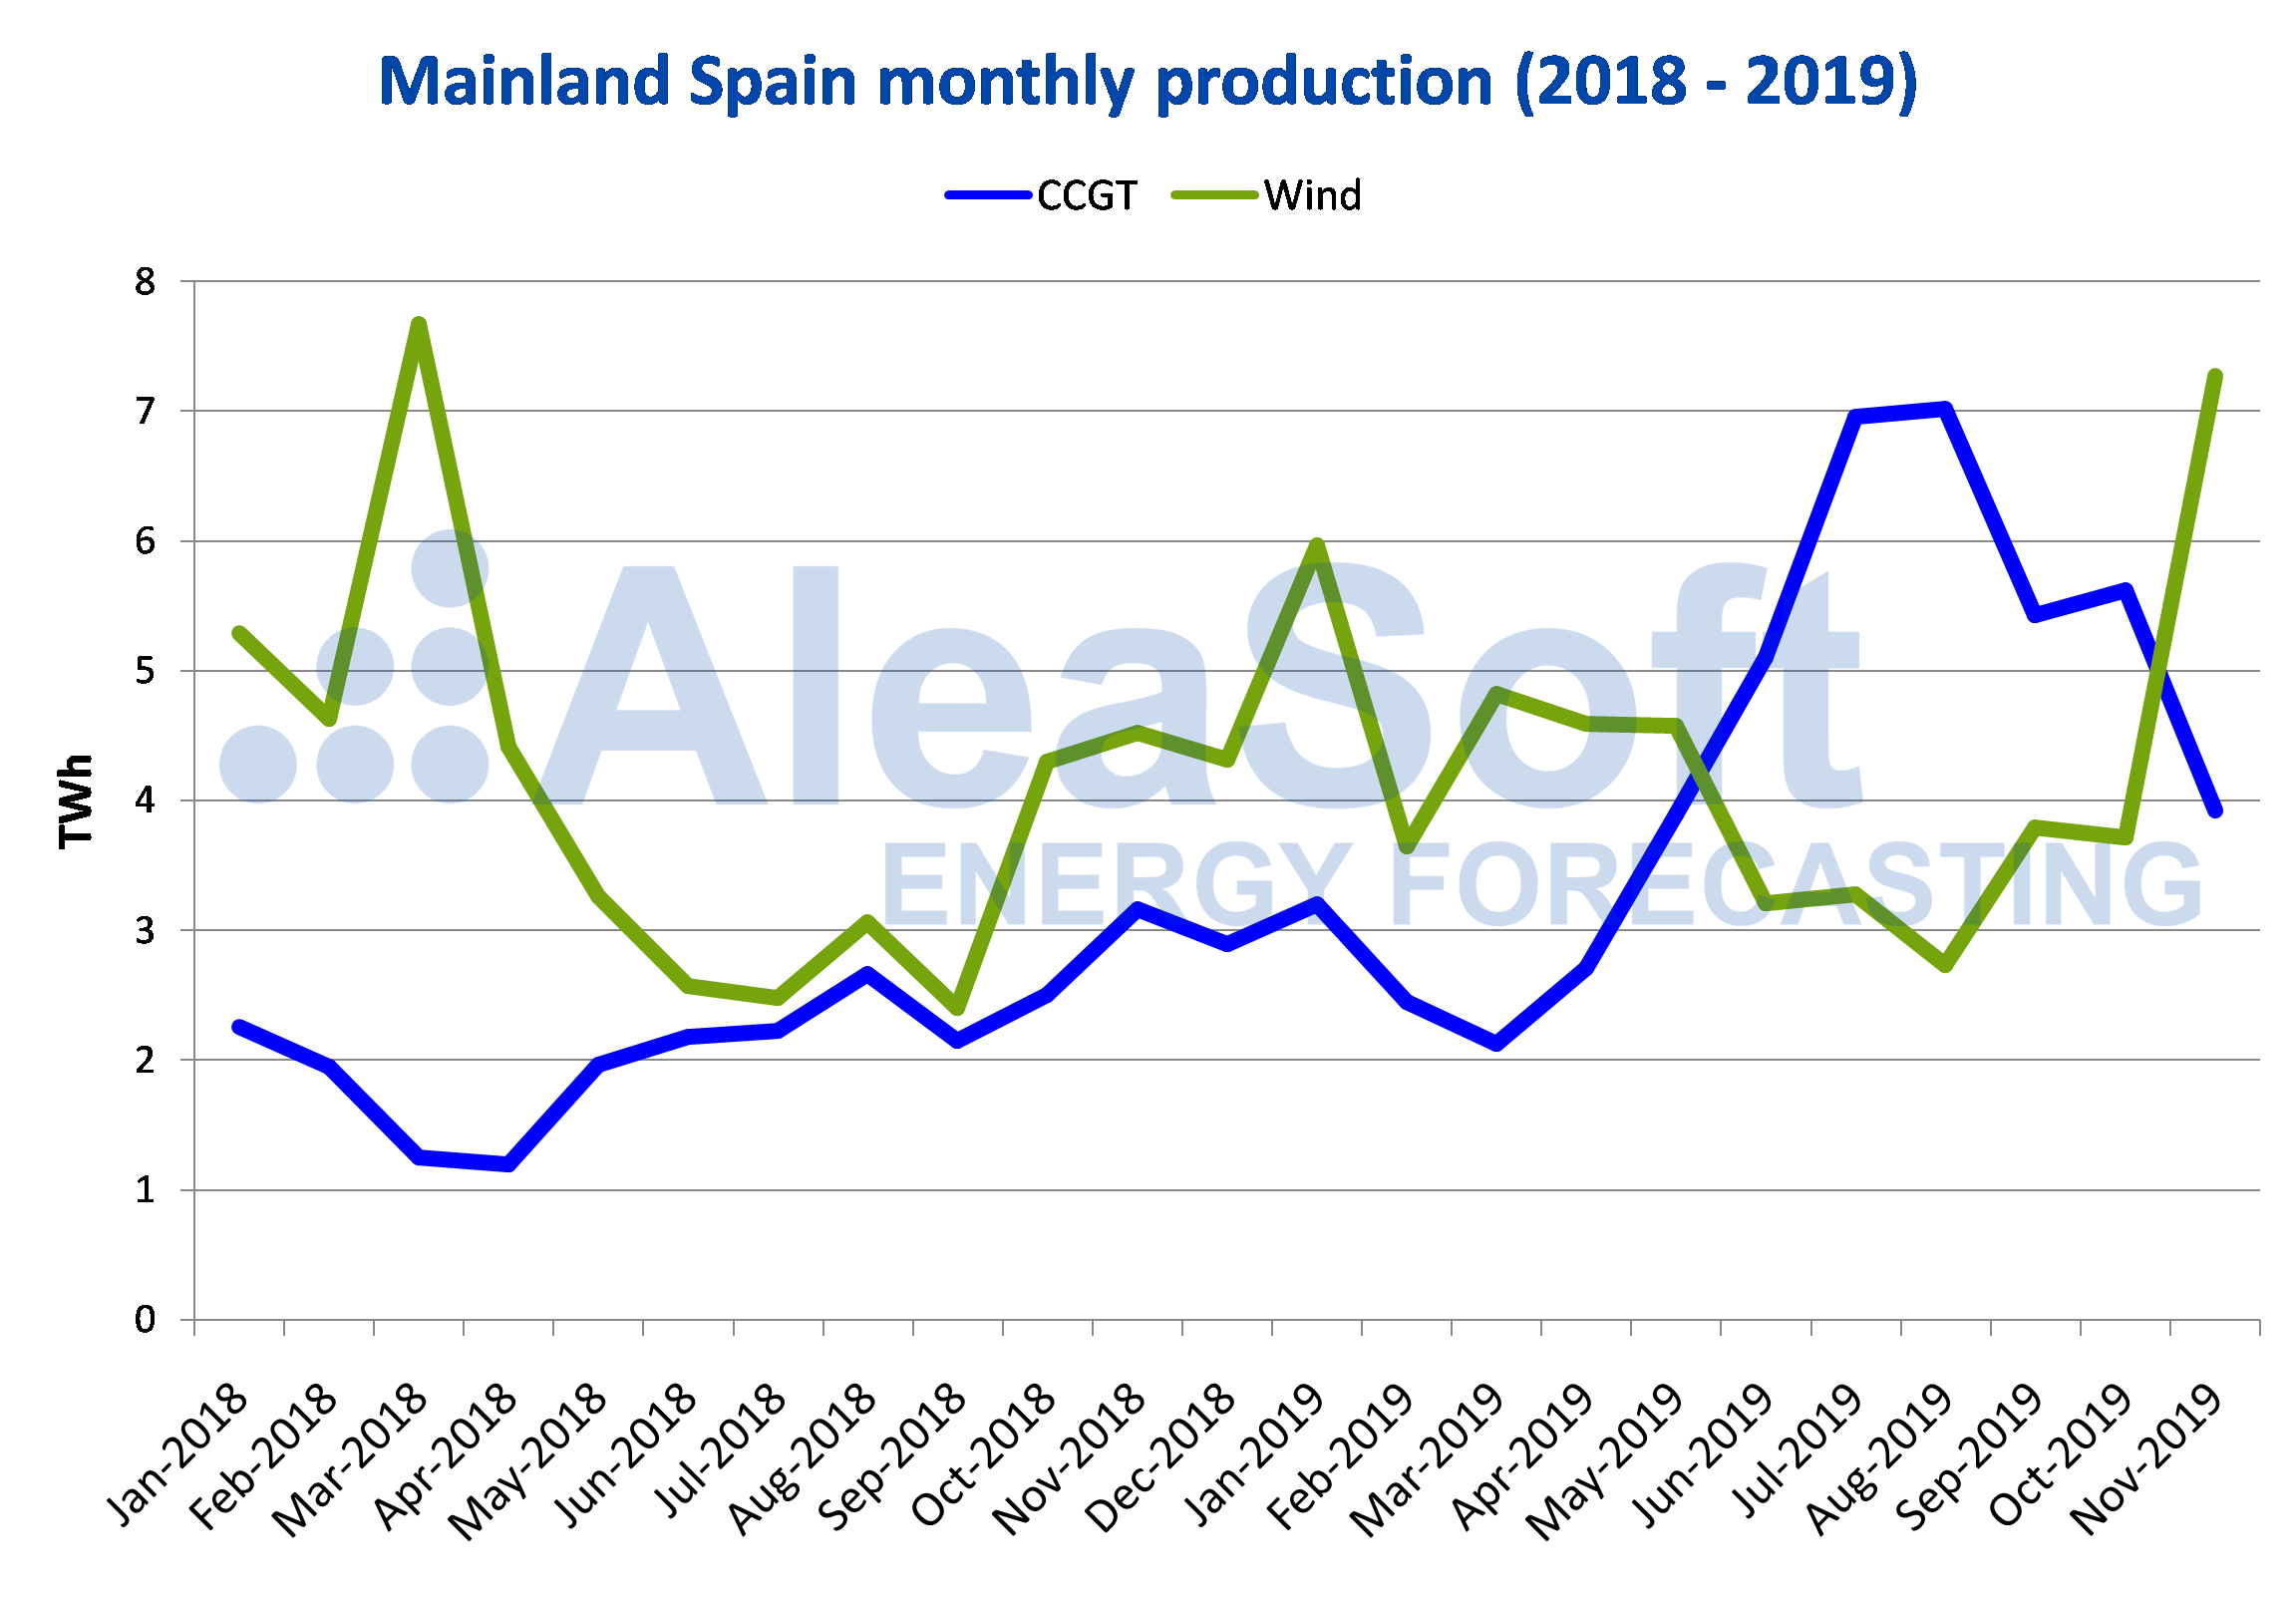 AleaSoft - Mainland Spain monthly production